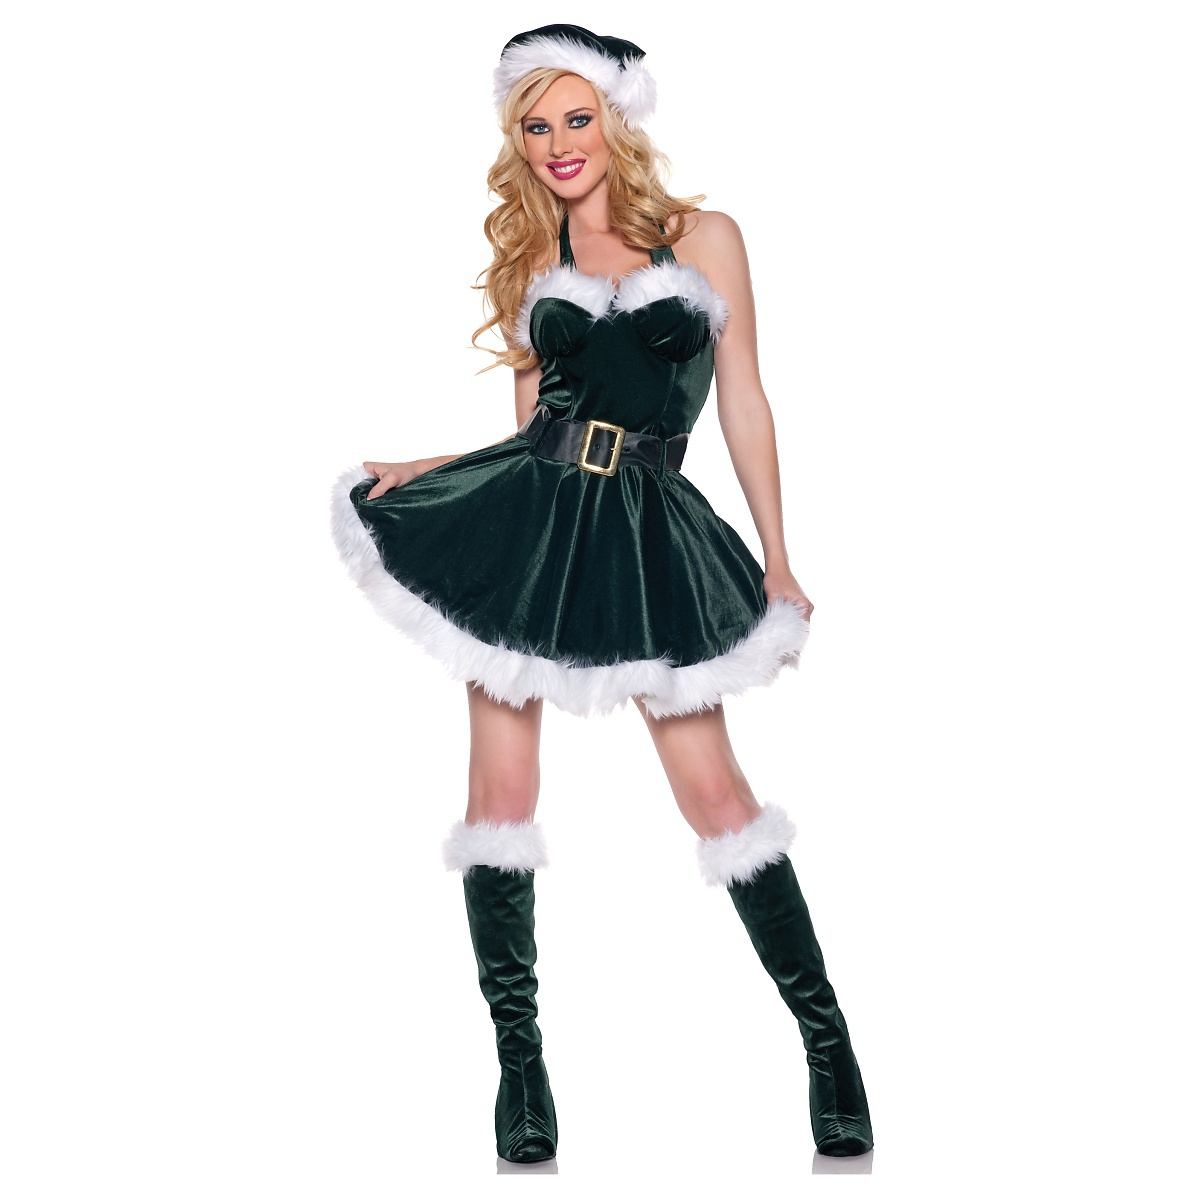 UNDERWRAPS Stocking Stuffer Santa Claus's Helper Elf Adult Sexy Dress Christmas Costume at Sears.com